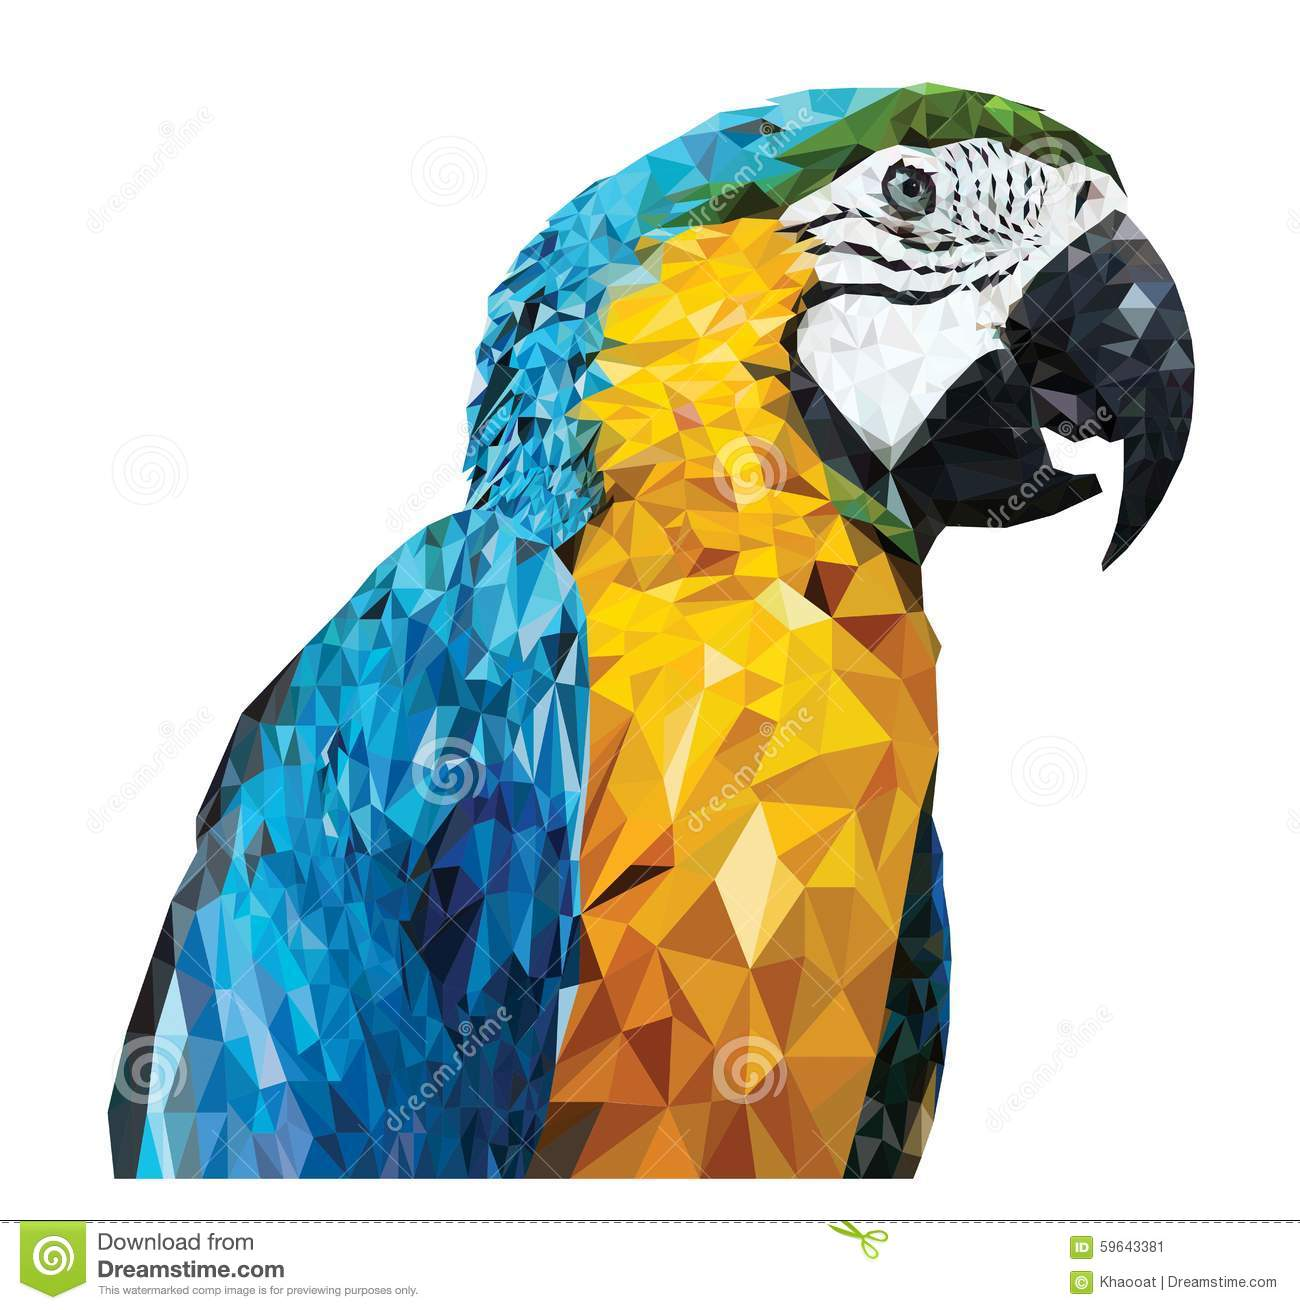 Poly conception de Parrot_Low